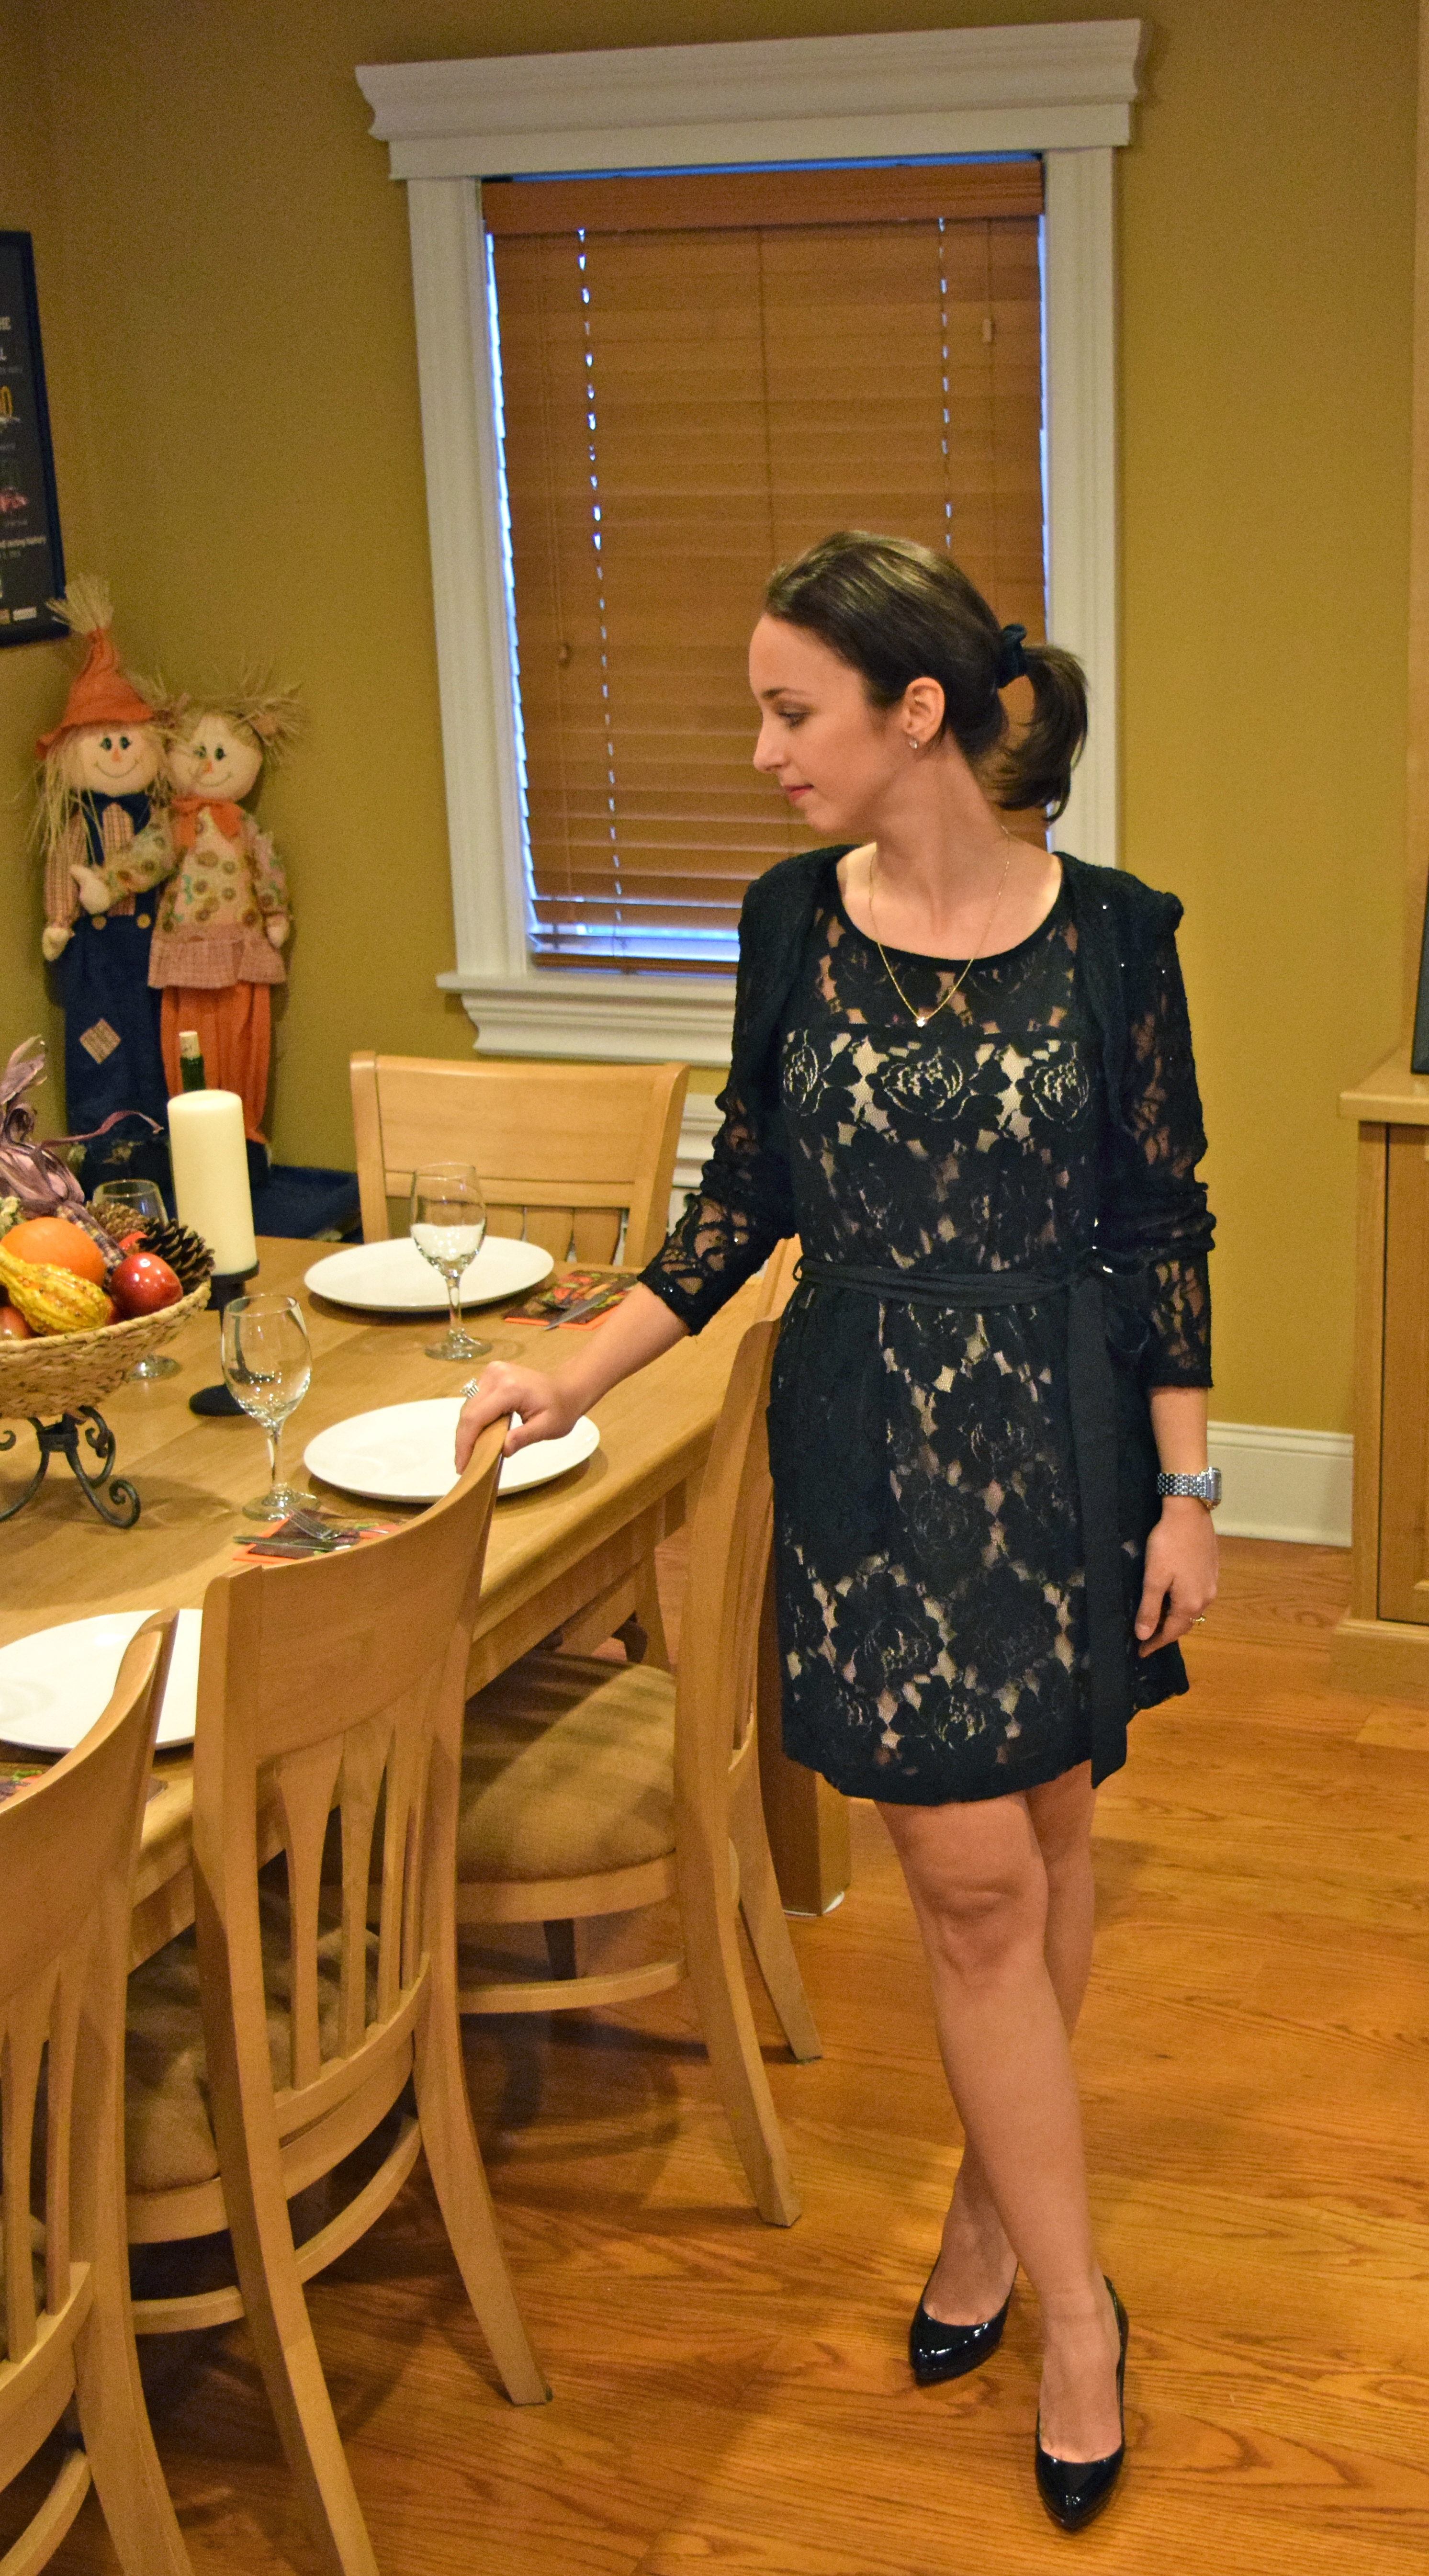 Thanksgiving at your home. Style: The Host